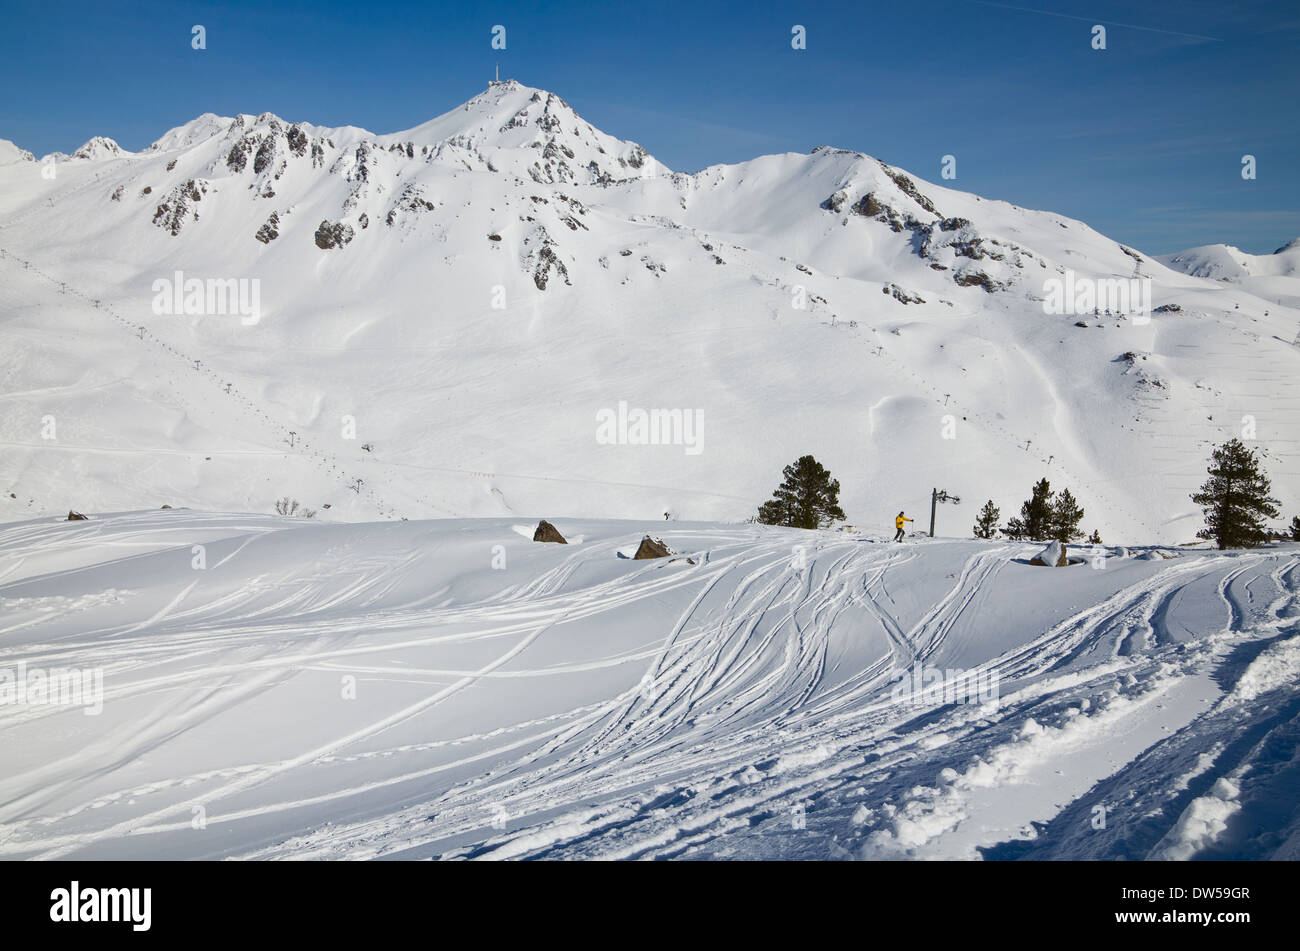 Skiing in the spring Pyrenees - Stock Image